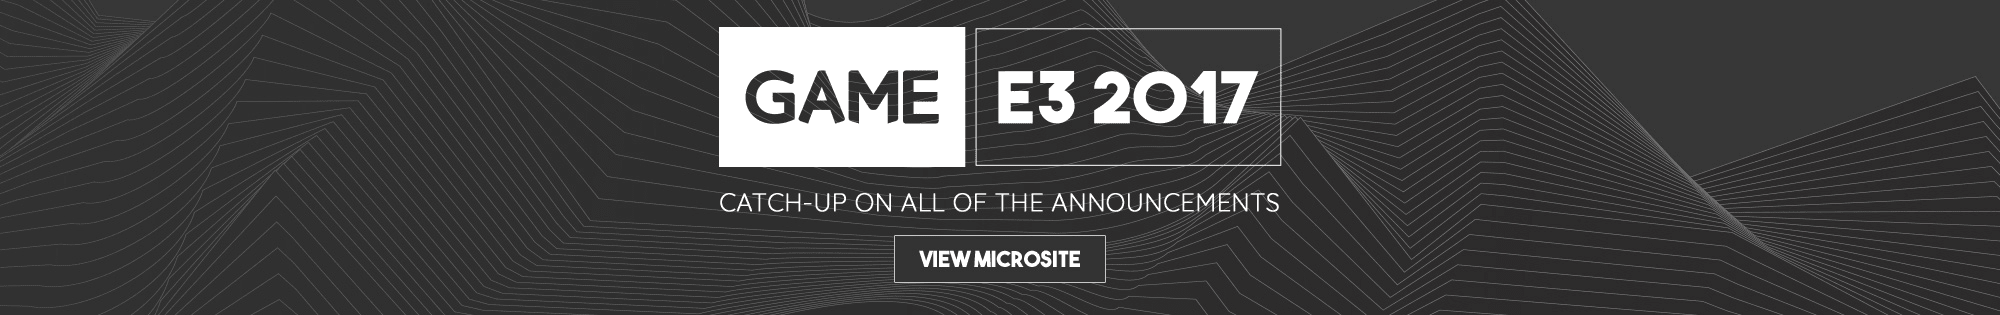 E3 2017 - Homepage Banner